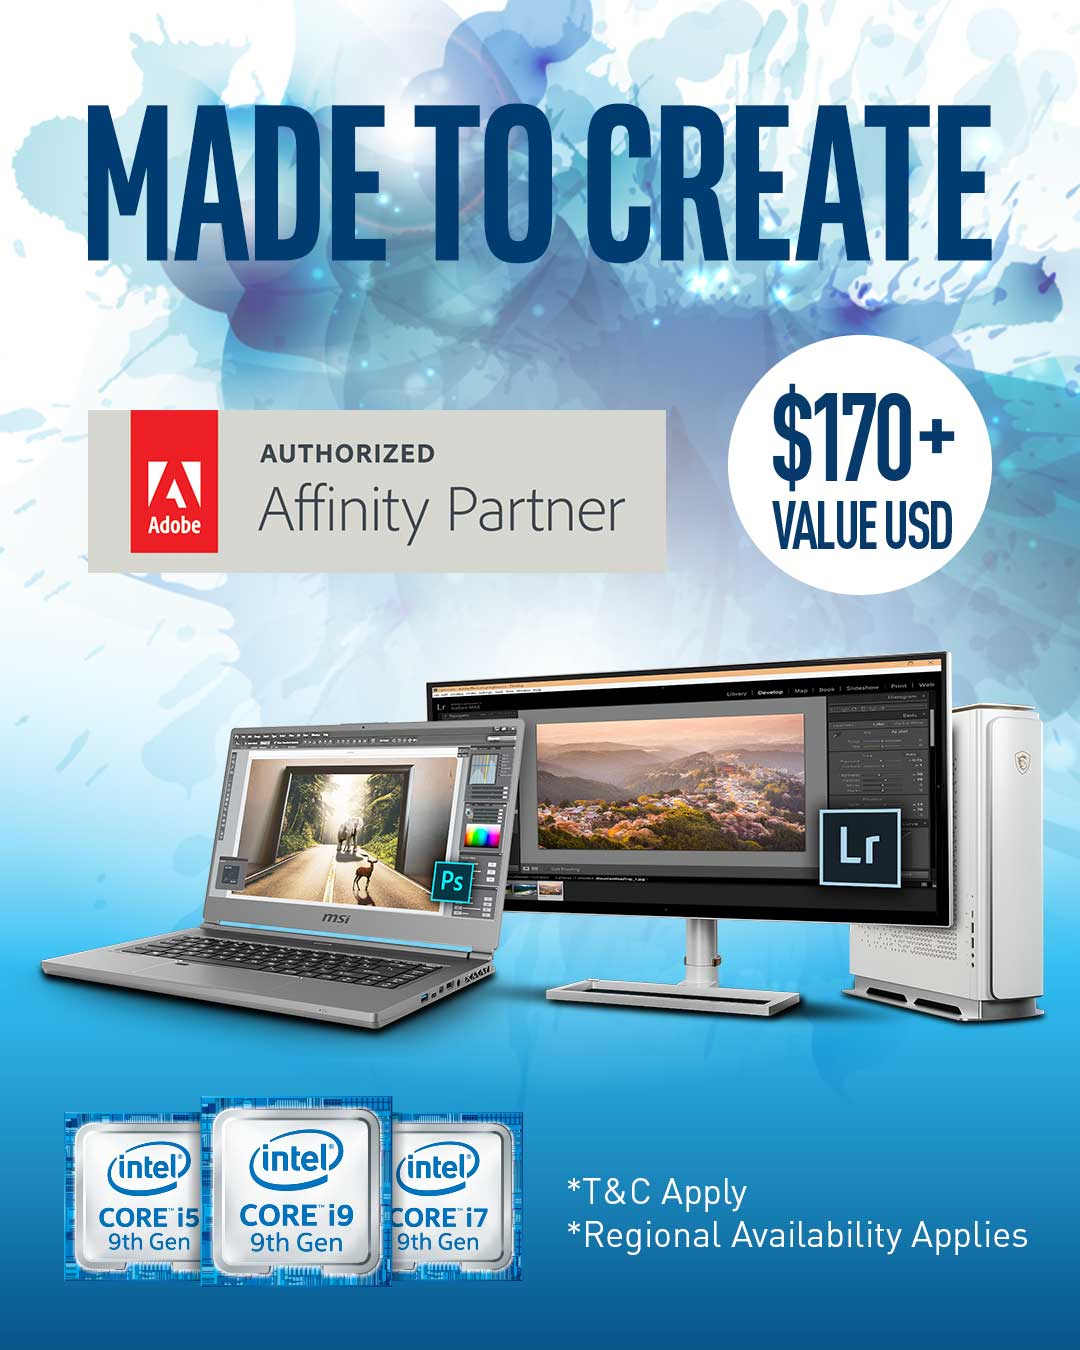 Adobe - Made to Create